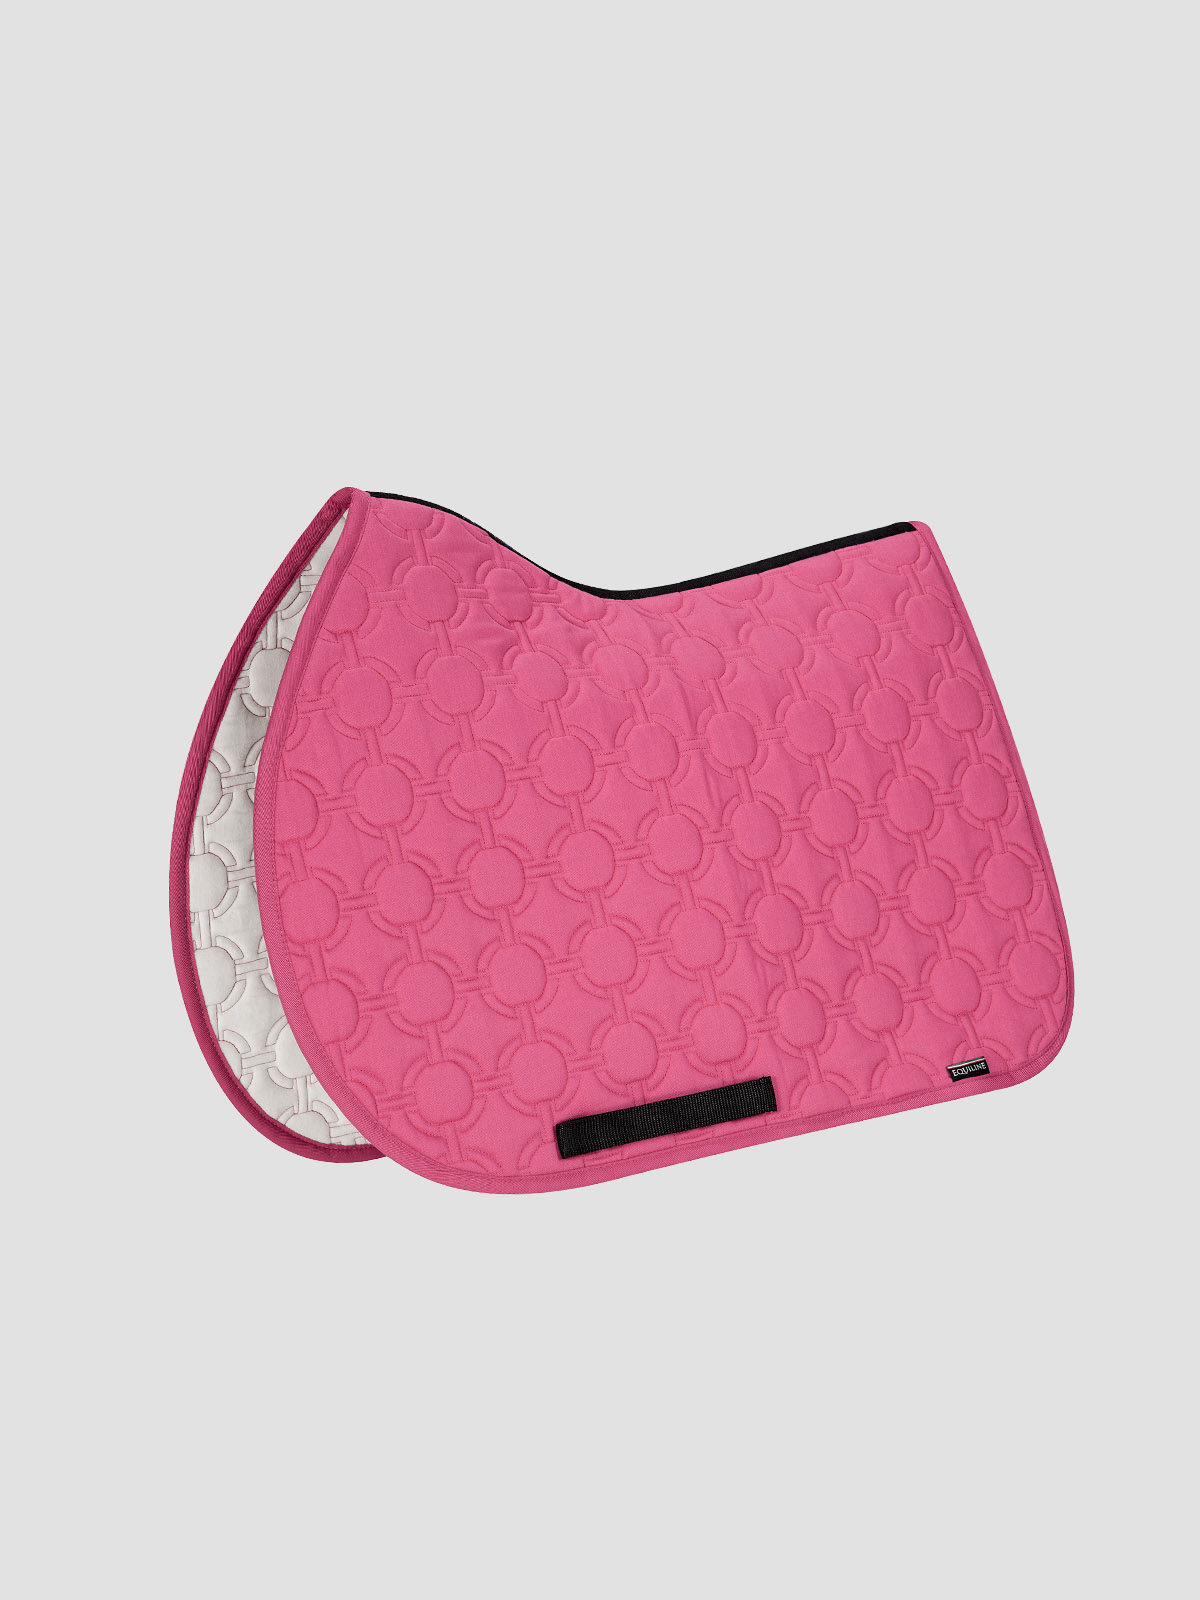 COPPER - Ring Patterned Saddle Pad 4